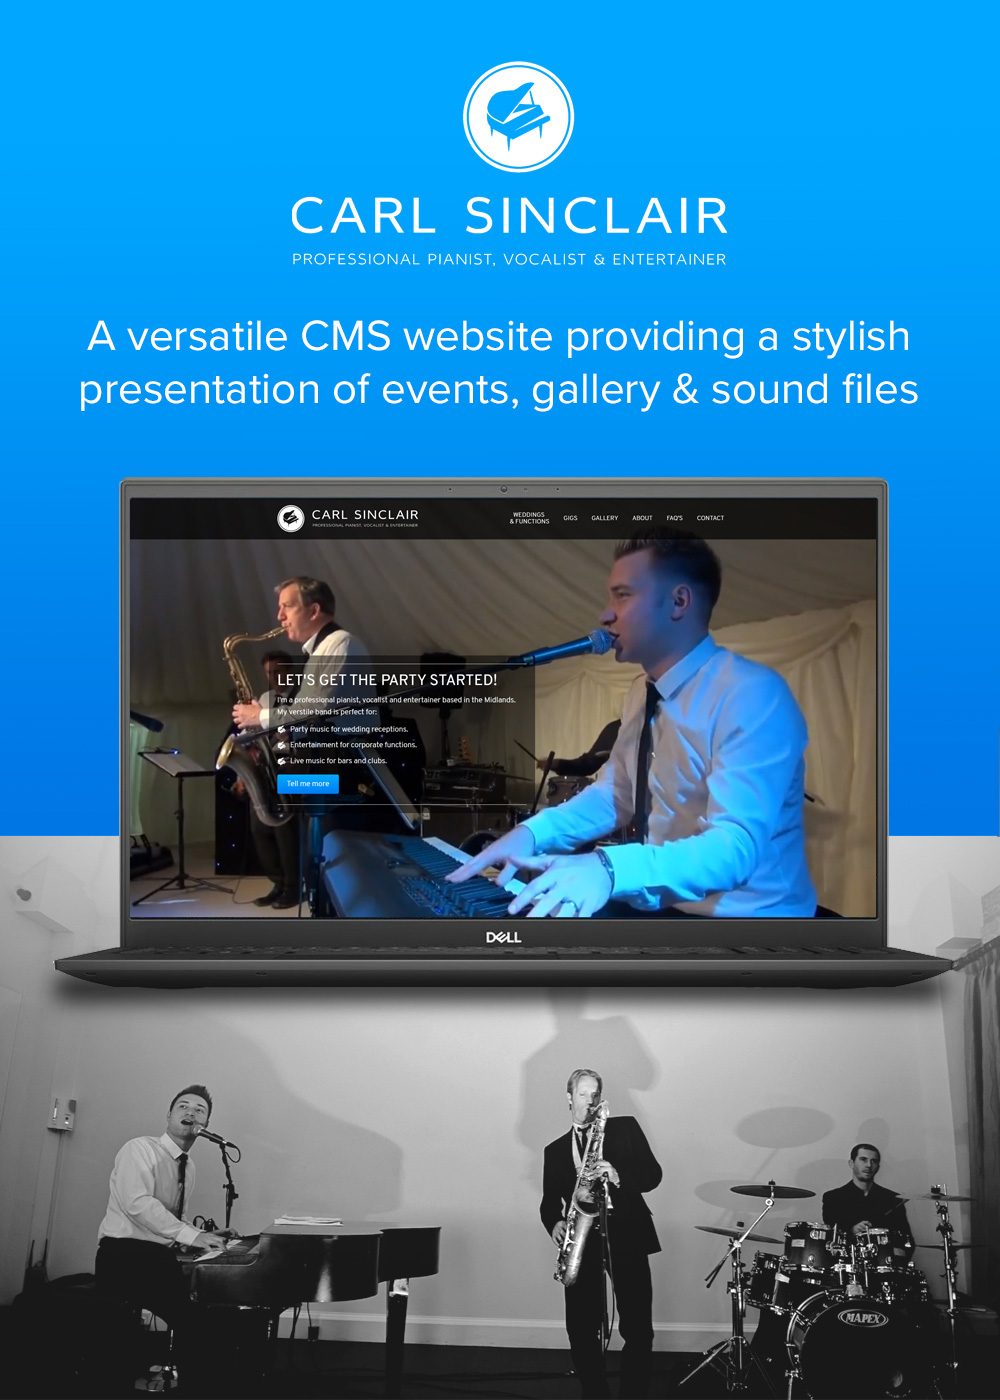 Website designed by Rugby Web Design Limited - Carl Sinclair